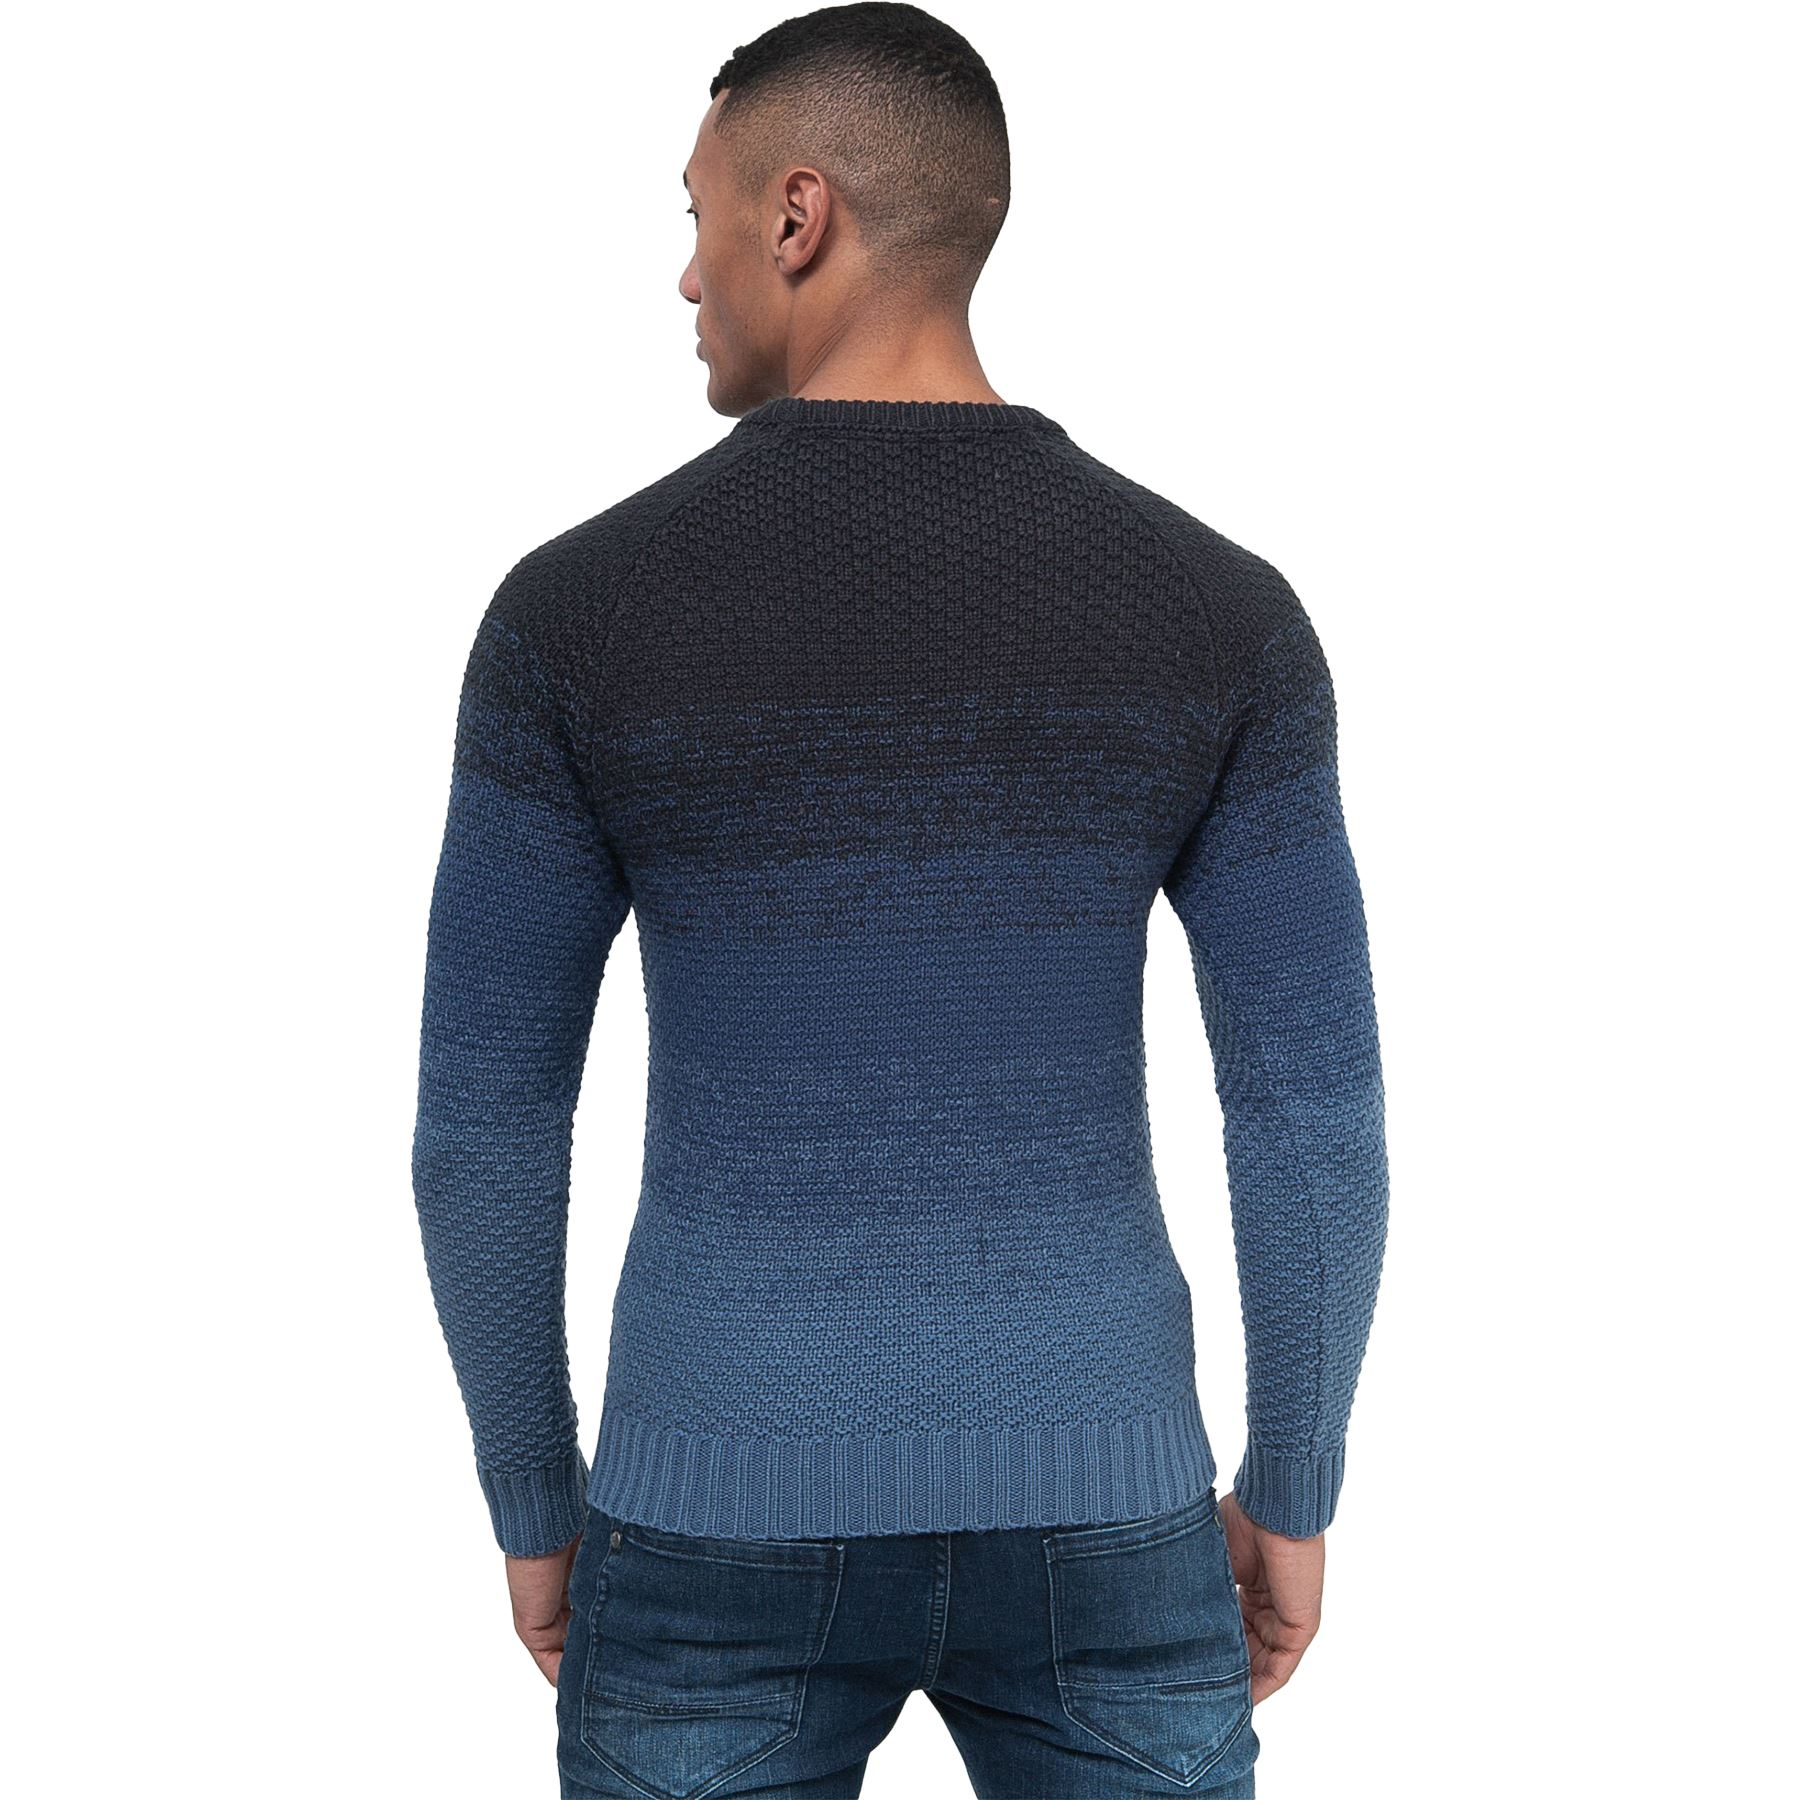 Mens-Knit-Jumper-Cable-Fisherman-Crosshatch-Sweater-Pullover-Top-Ribbed-Winter thumbnail 9